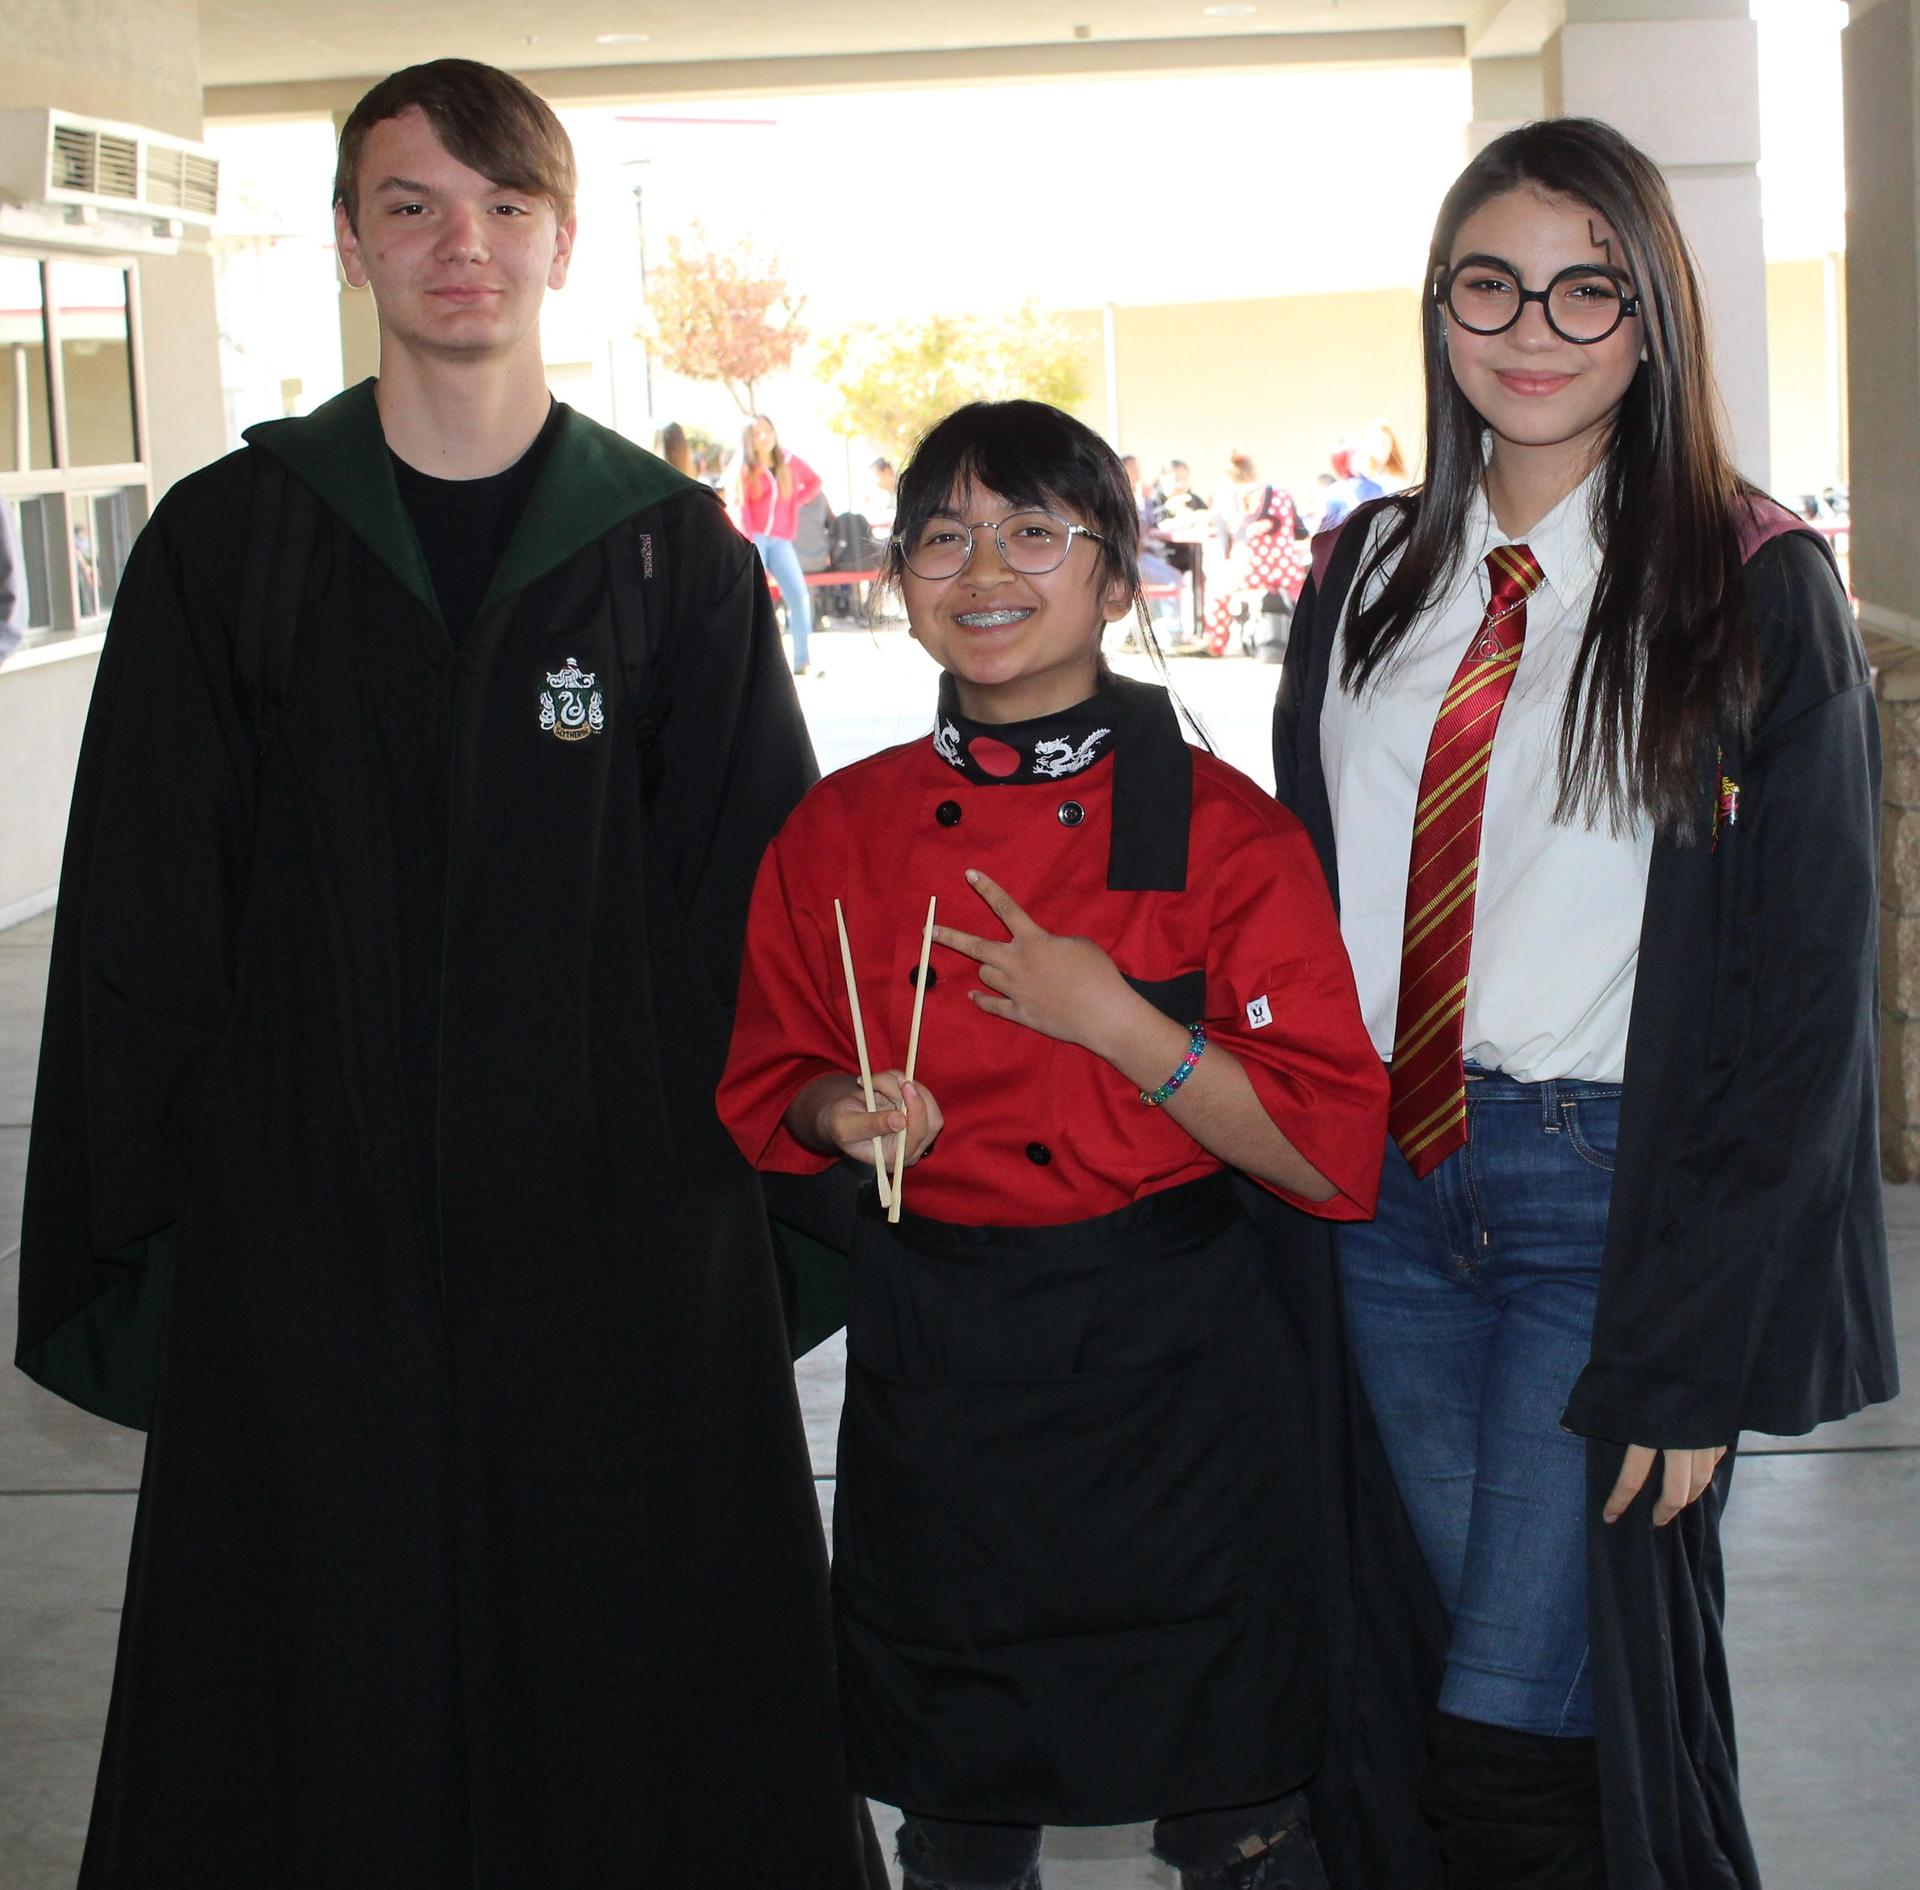 Michael Fox as harry potter, Mayvellene Dimapasoc as a chef, Charlize Yates as harry potter